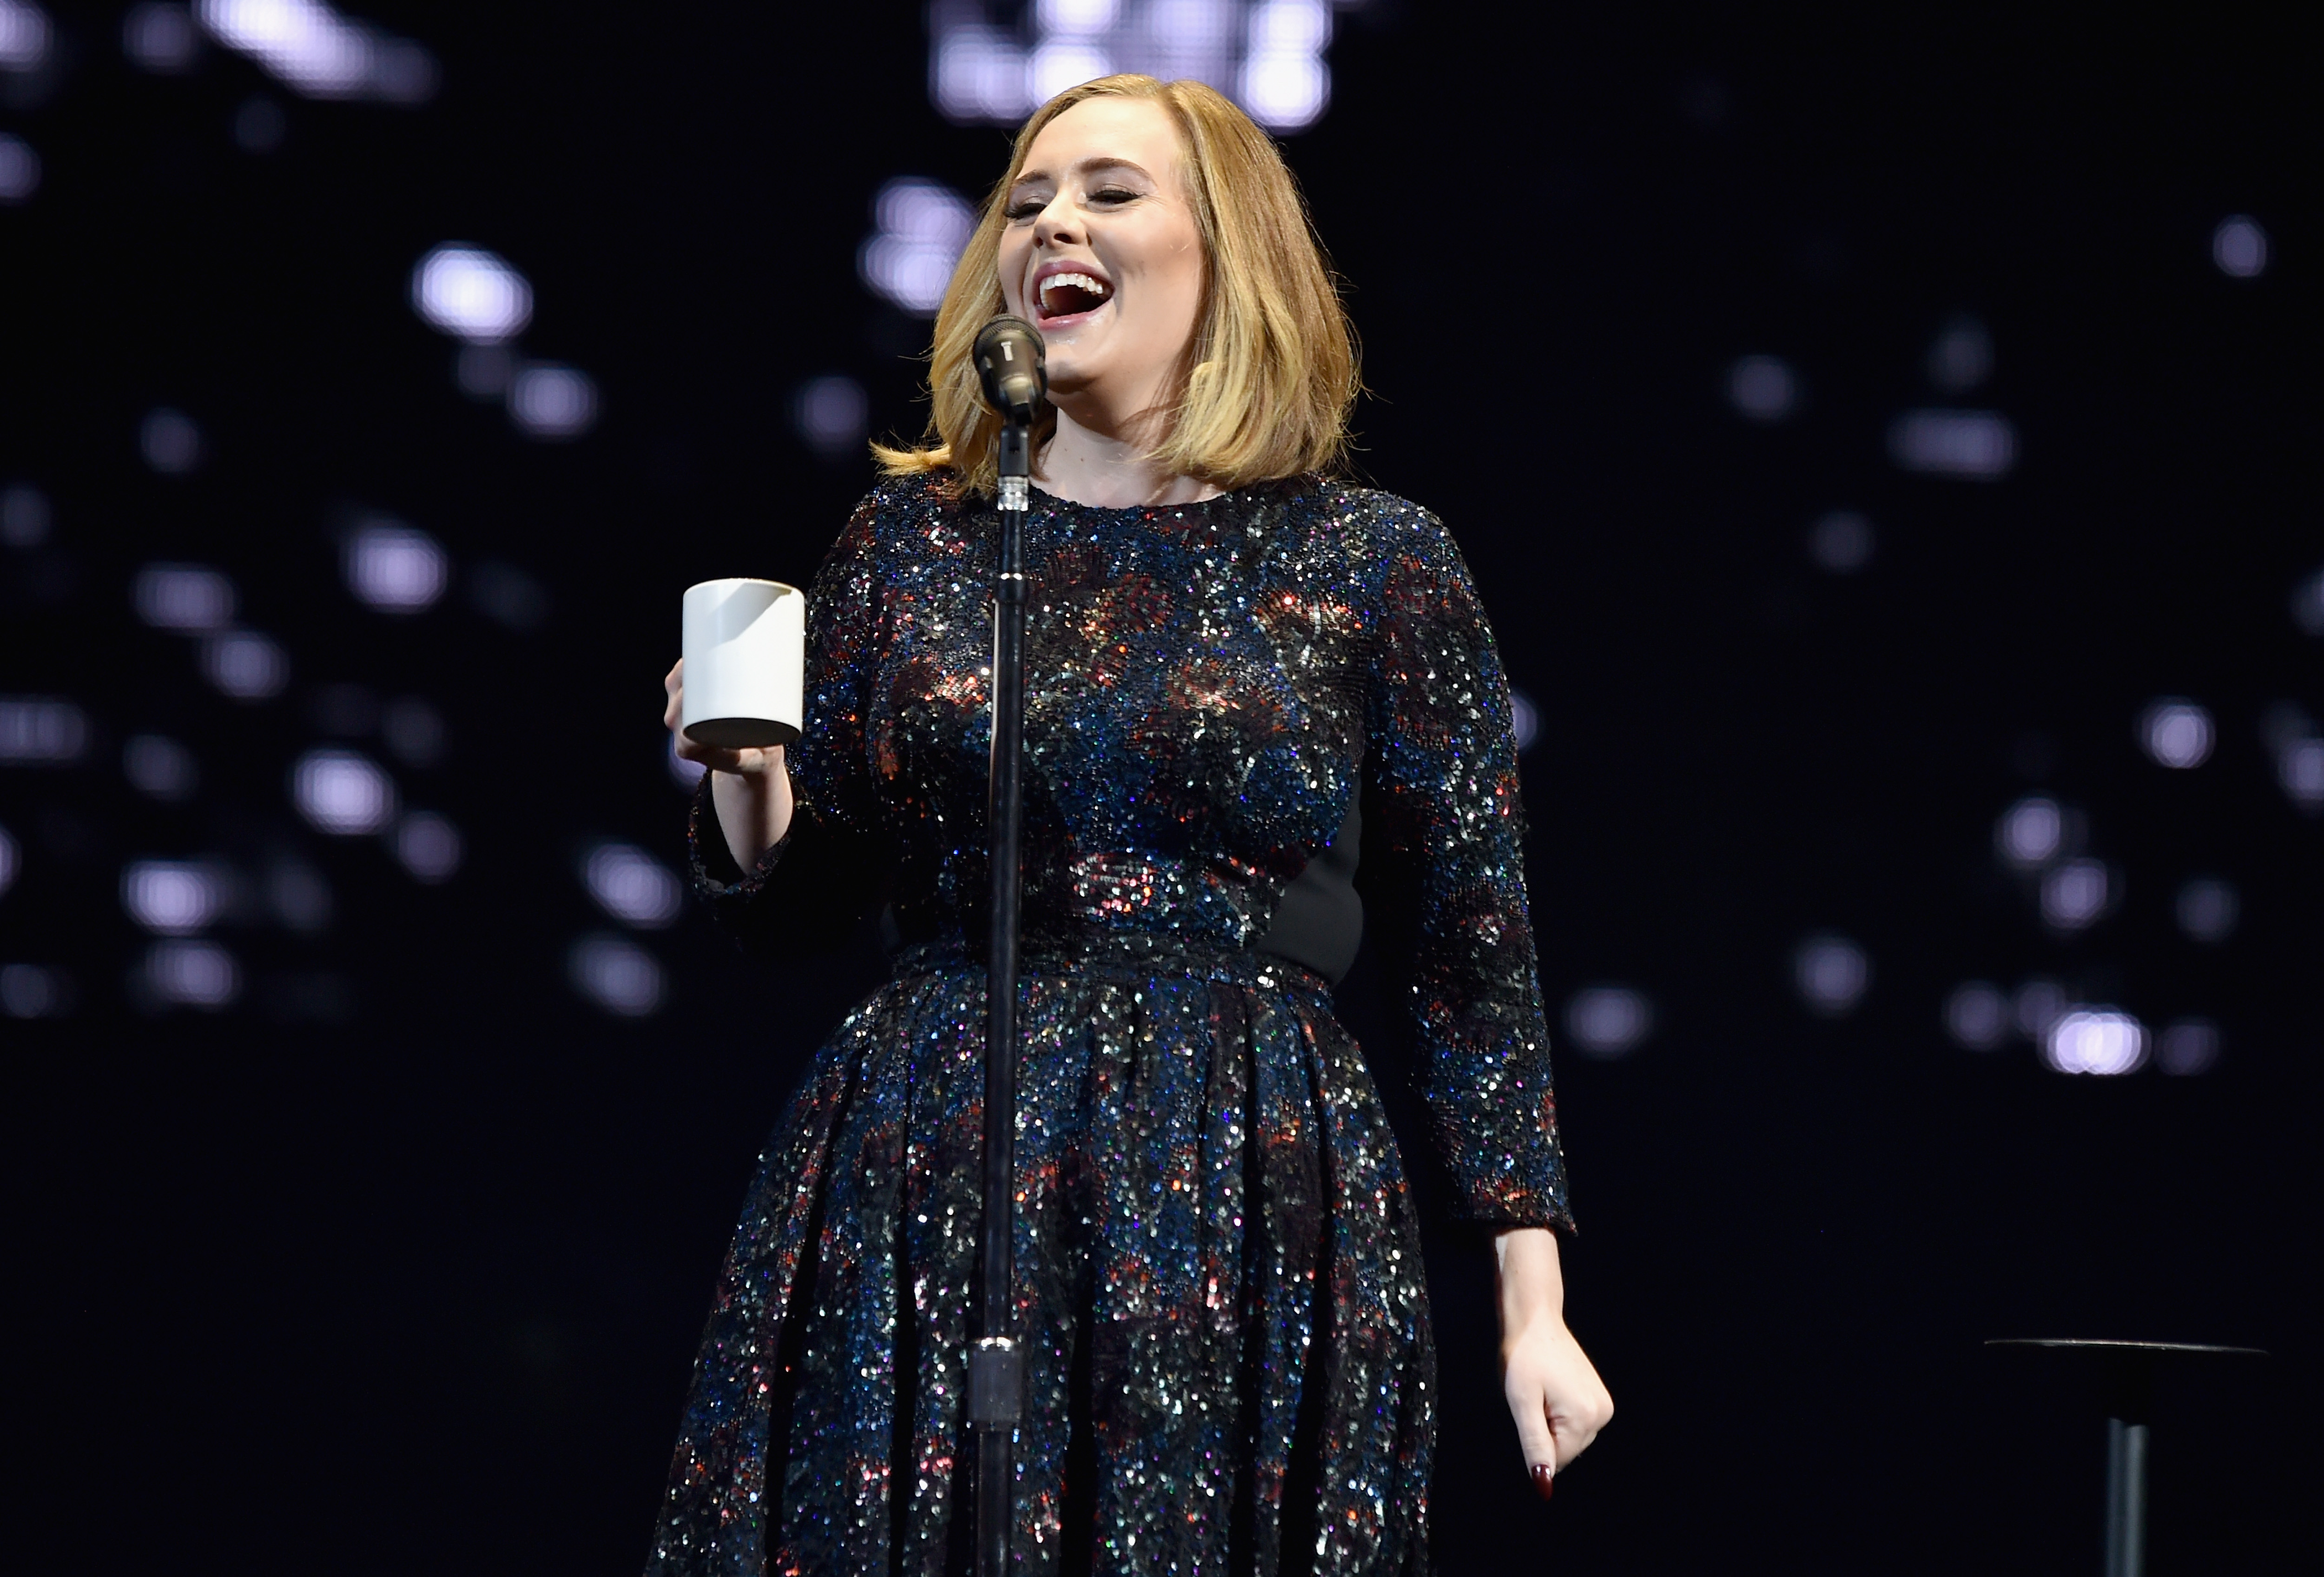 Emily Eavis just dropped the biggest hint yet that Adele WILL headline Glastonbury 2016 (even though the crowds are 'too big')